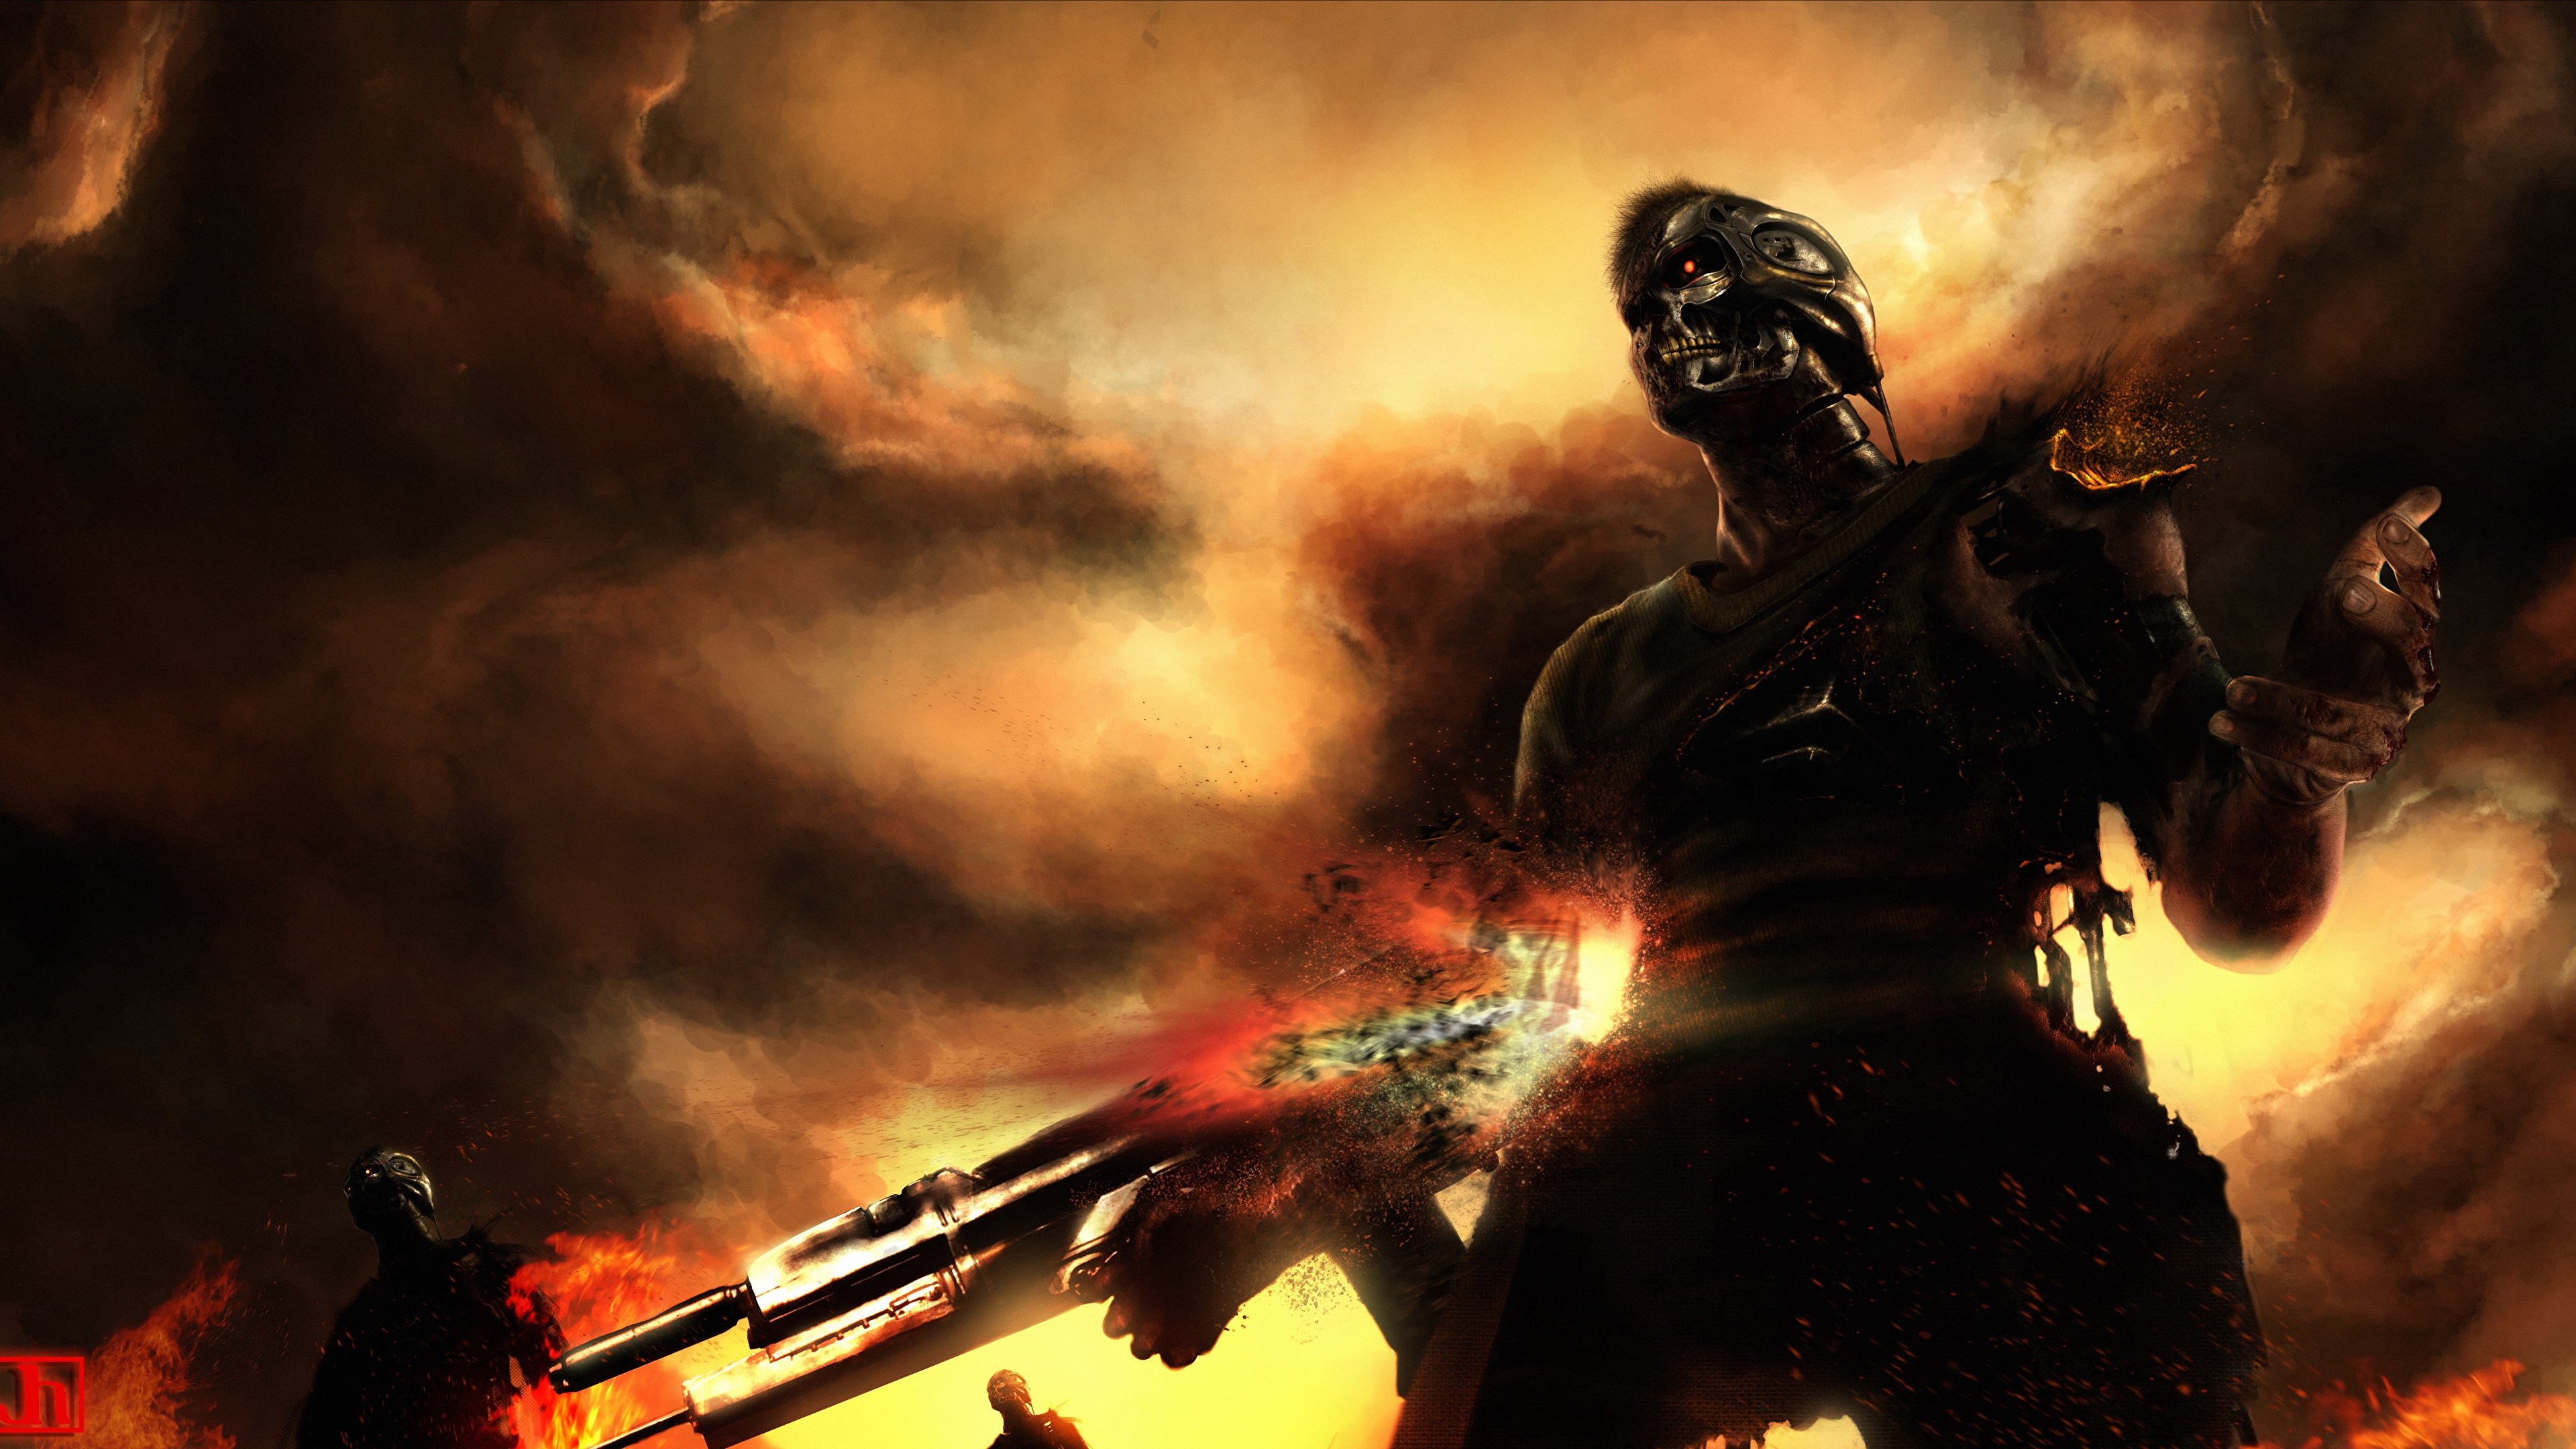 Desktop Wallpapers The Terminator Robots Fantasy Movies